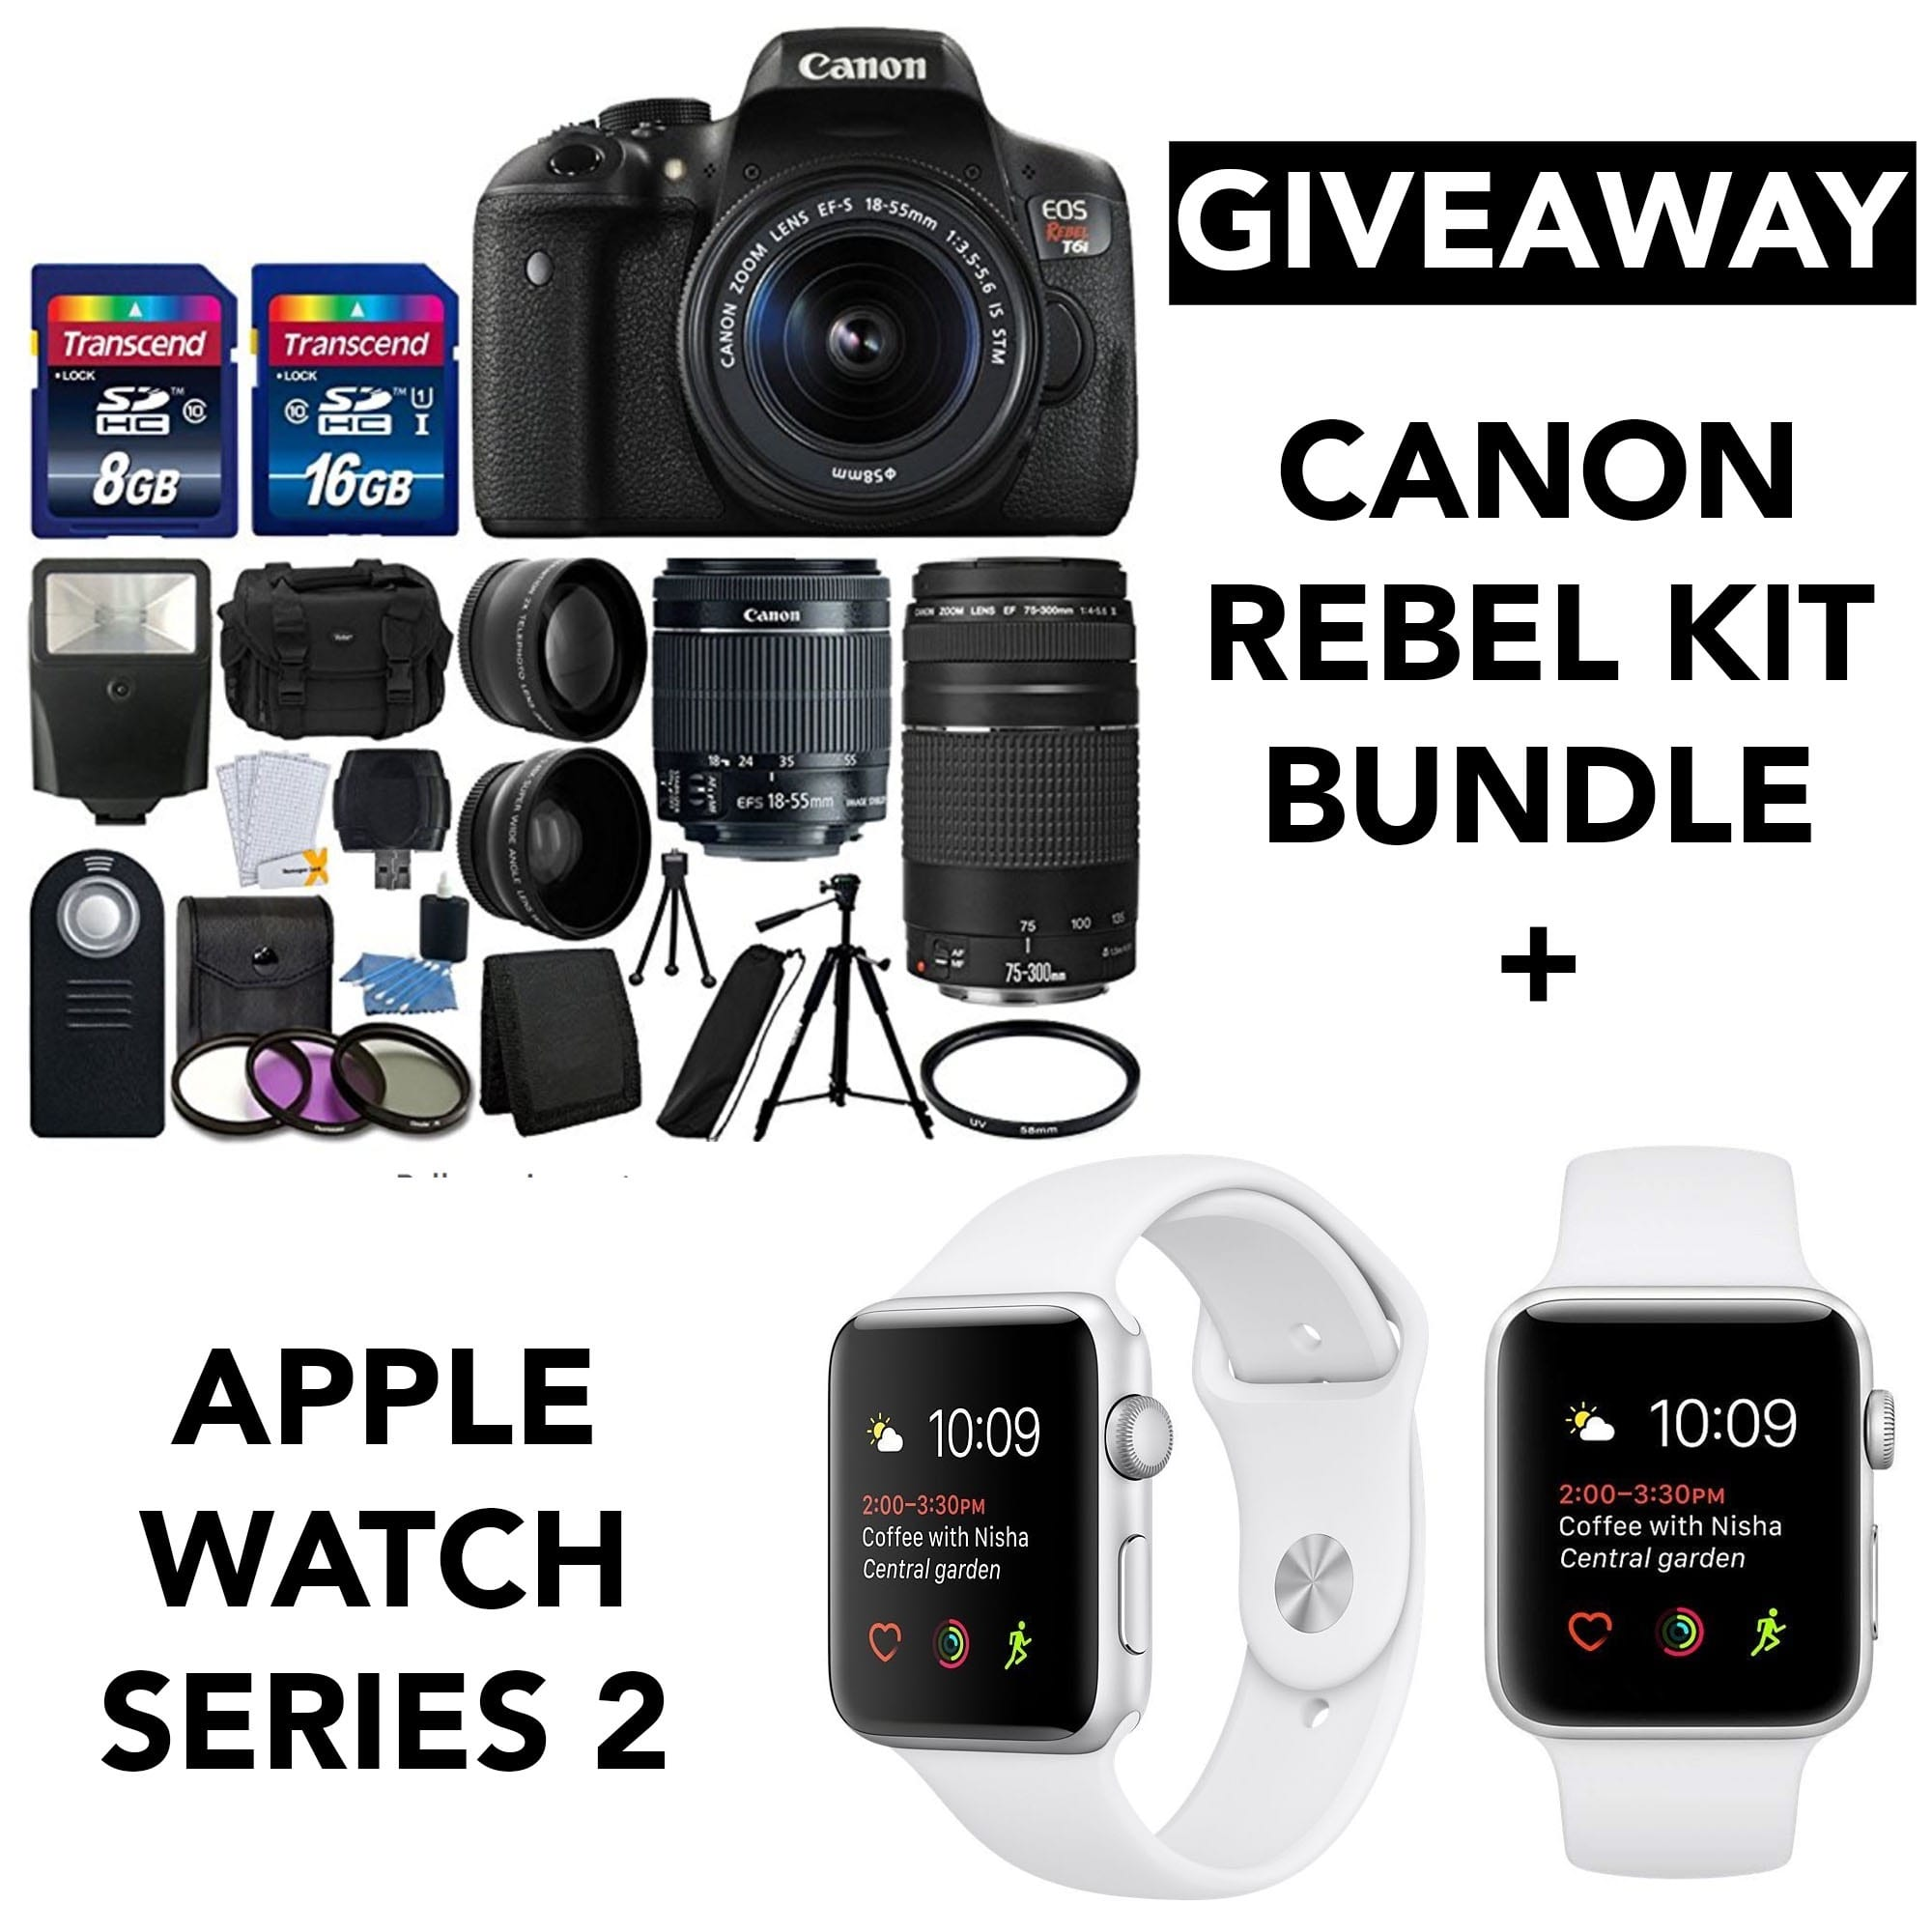 giveaway, cannon rebel kit, apple watch series 2,